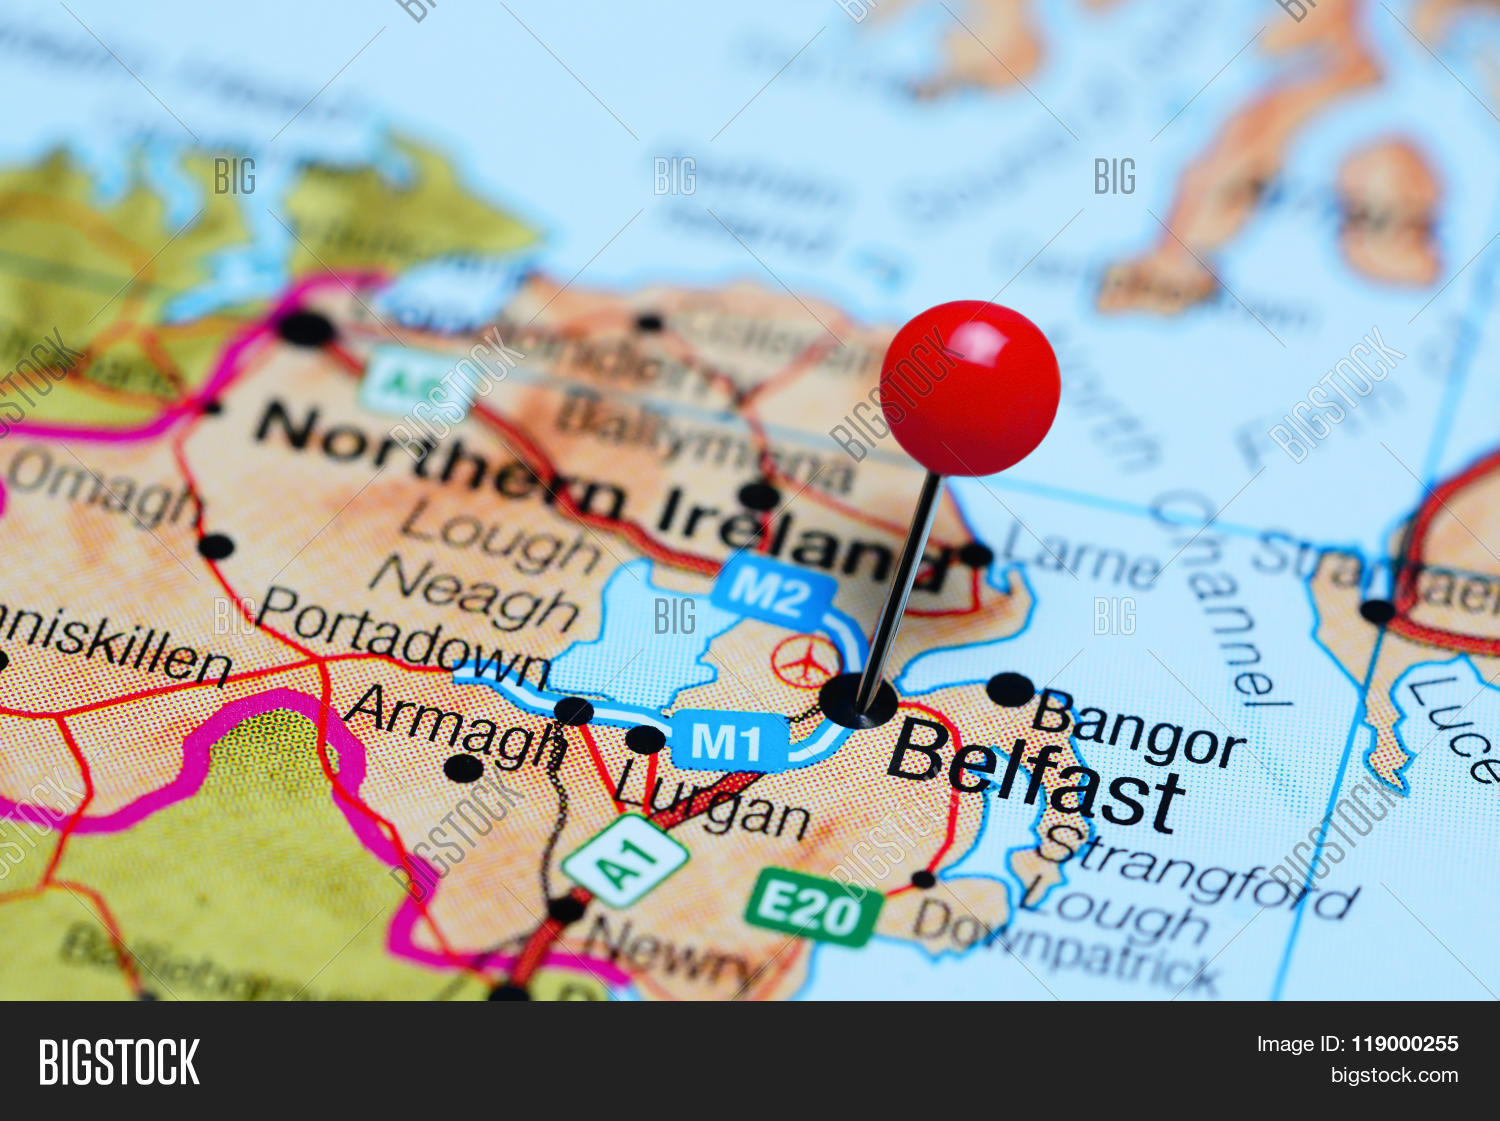 Belfast Pinned On Map Image & Photo (Free Trial) | Bigstock